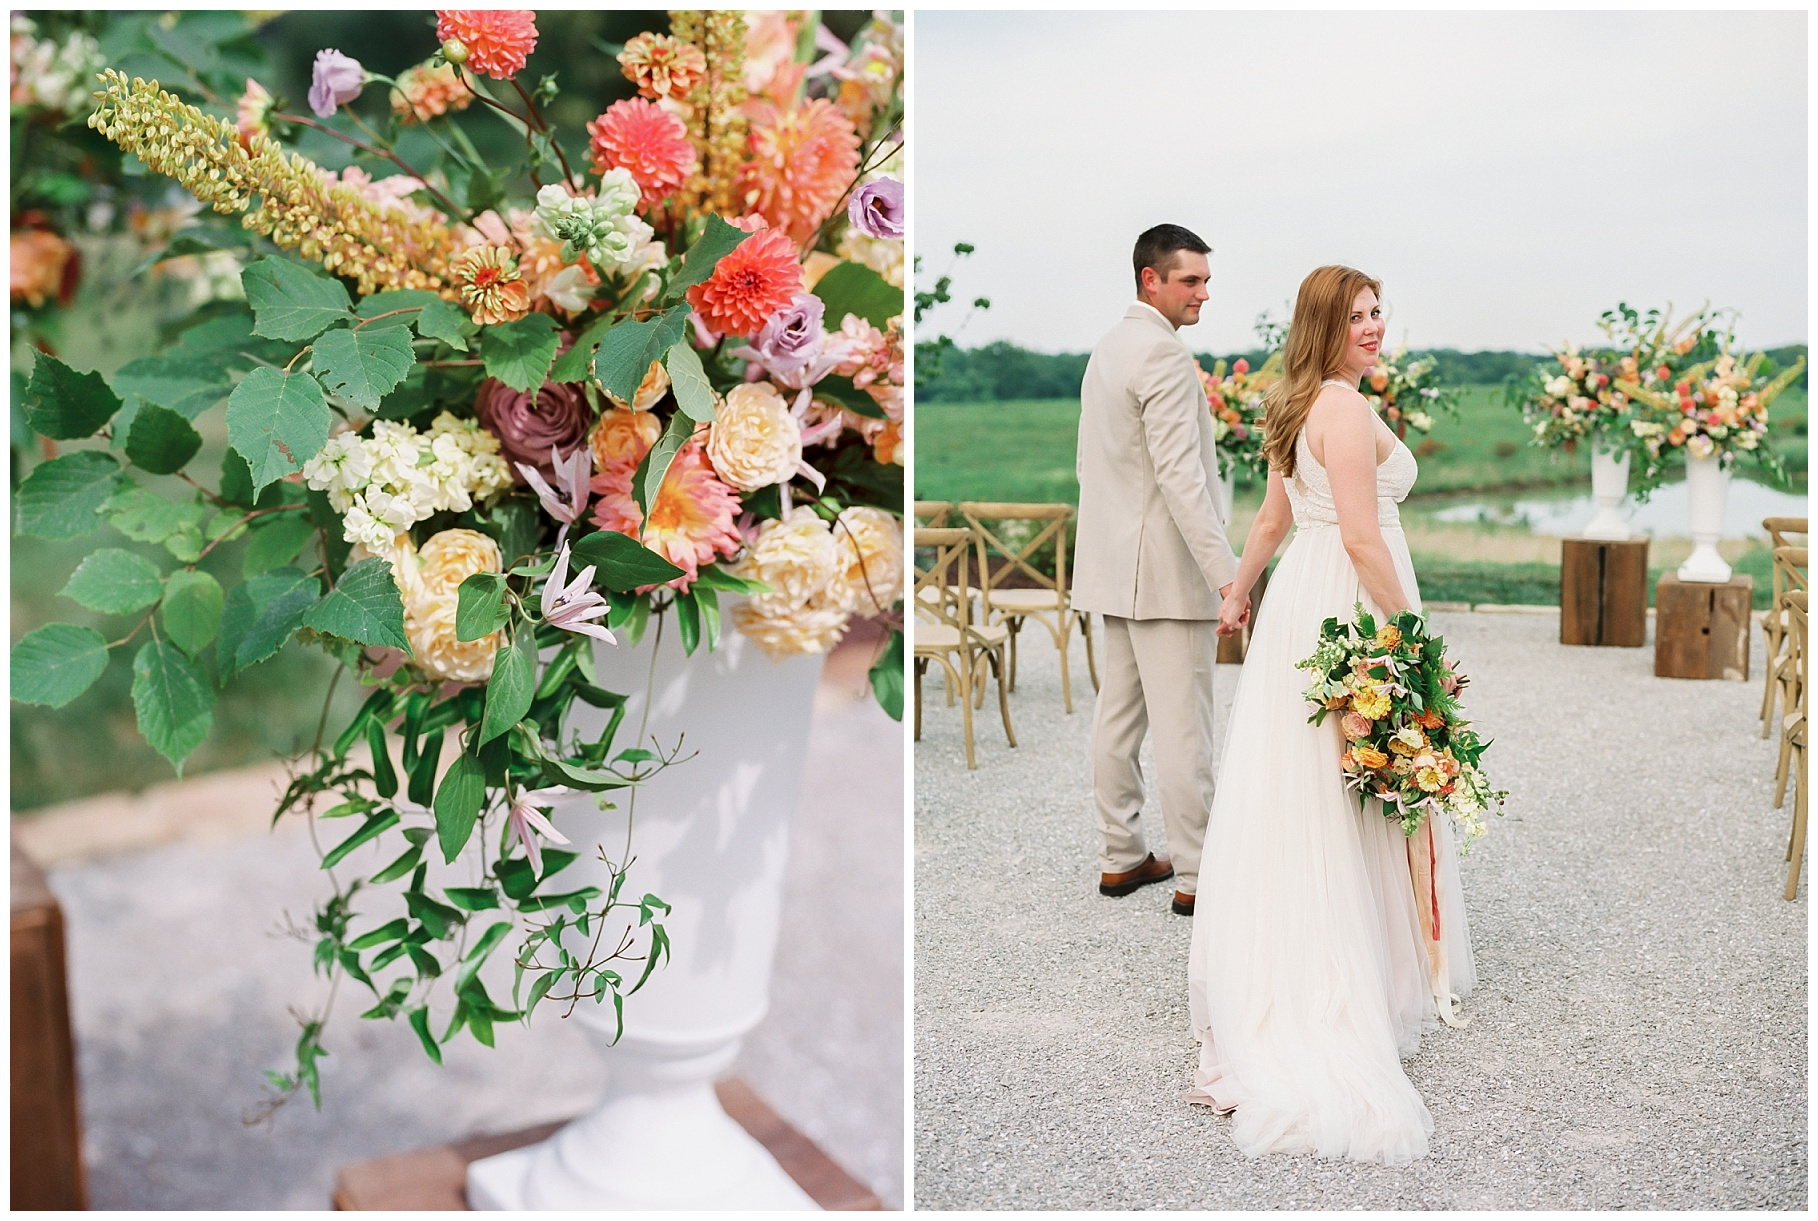 Late Summer Wedding With Pastel Toned Soiree at Blue Bell Farm by Kelsi Kliethermes Photography Best Columbia Missouri Wedding Photographer_0065.jpg